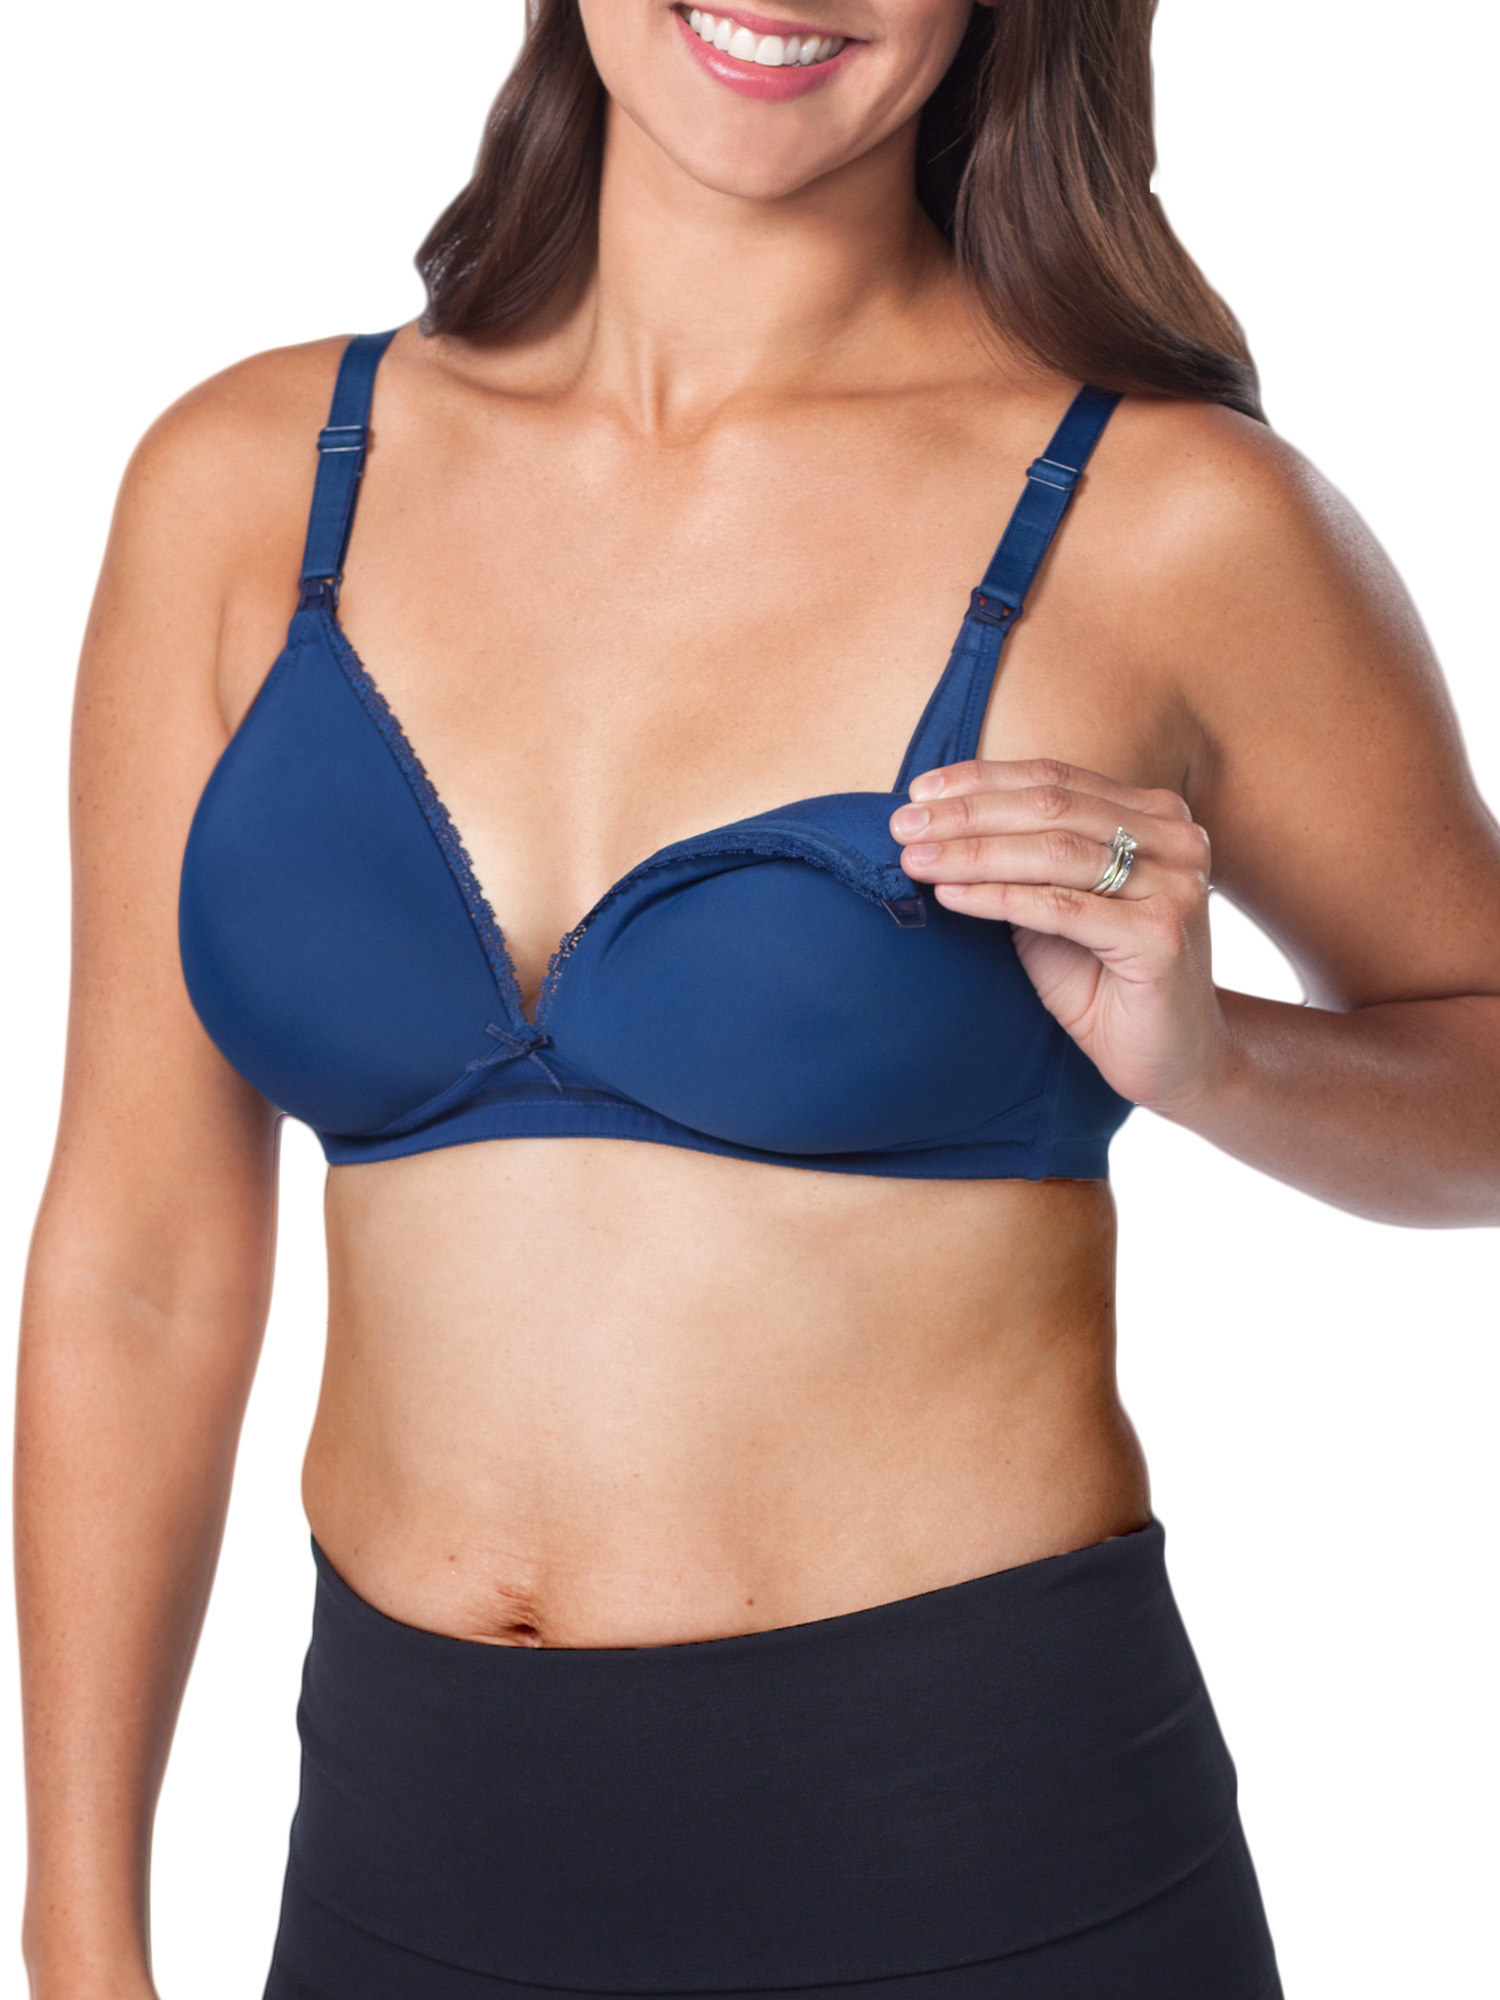 e65cba321 17 Bras You Can Get At Walmart That People Actually Swear By